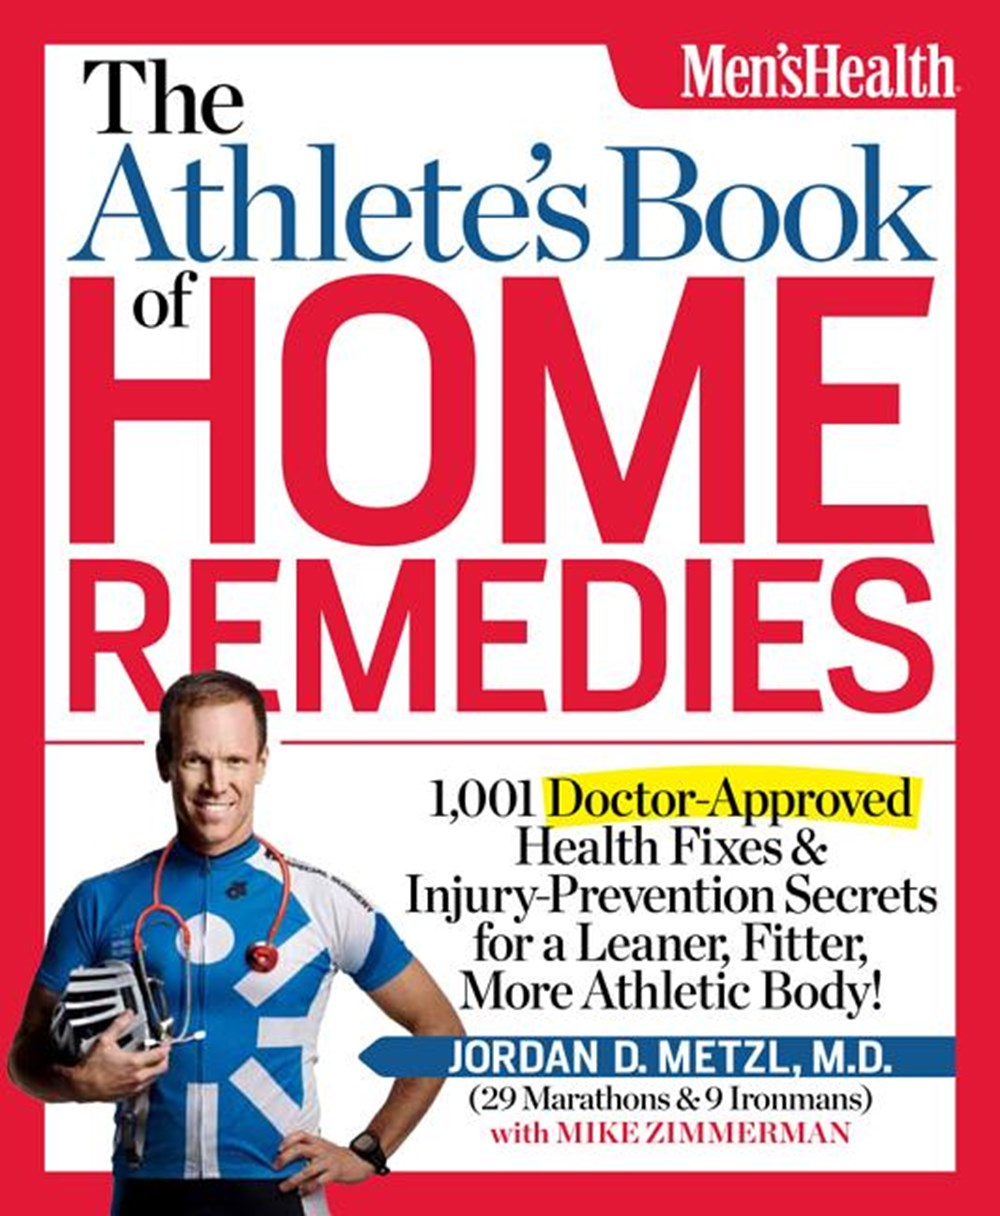 Athlete's Book of Home Remedies 1,001 Doctor-Approved Health Fixes and Injury-Prevention Secrets for